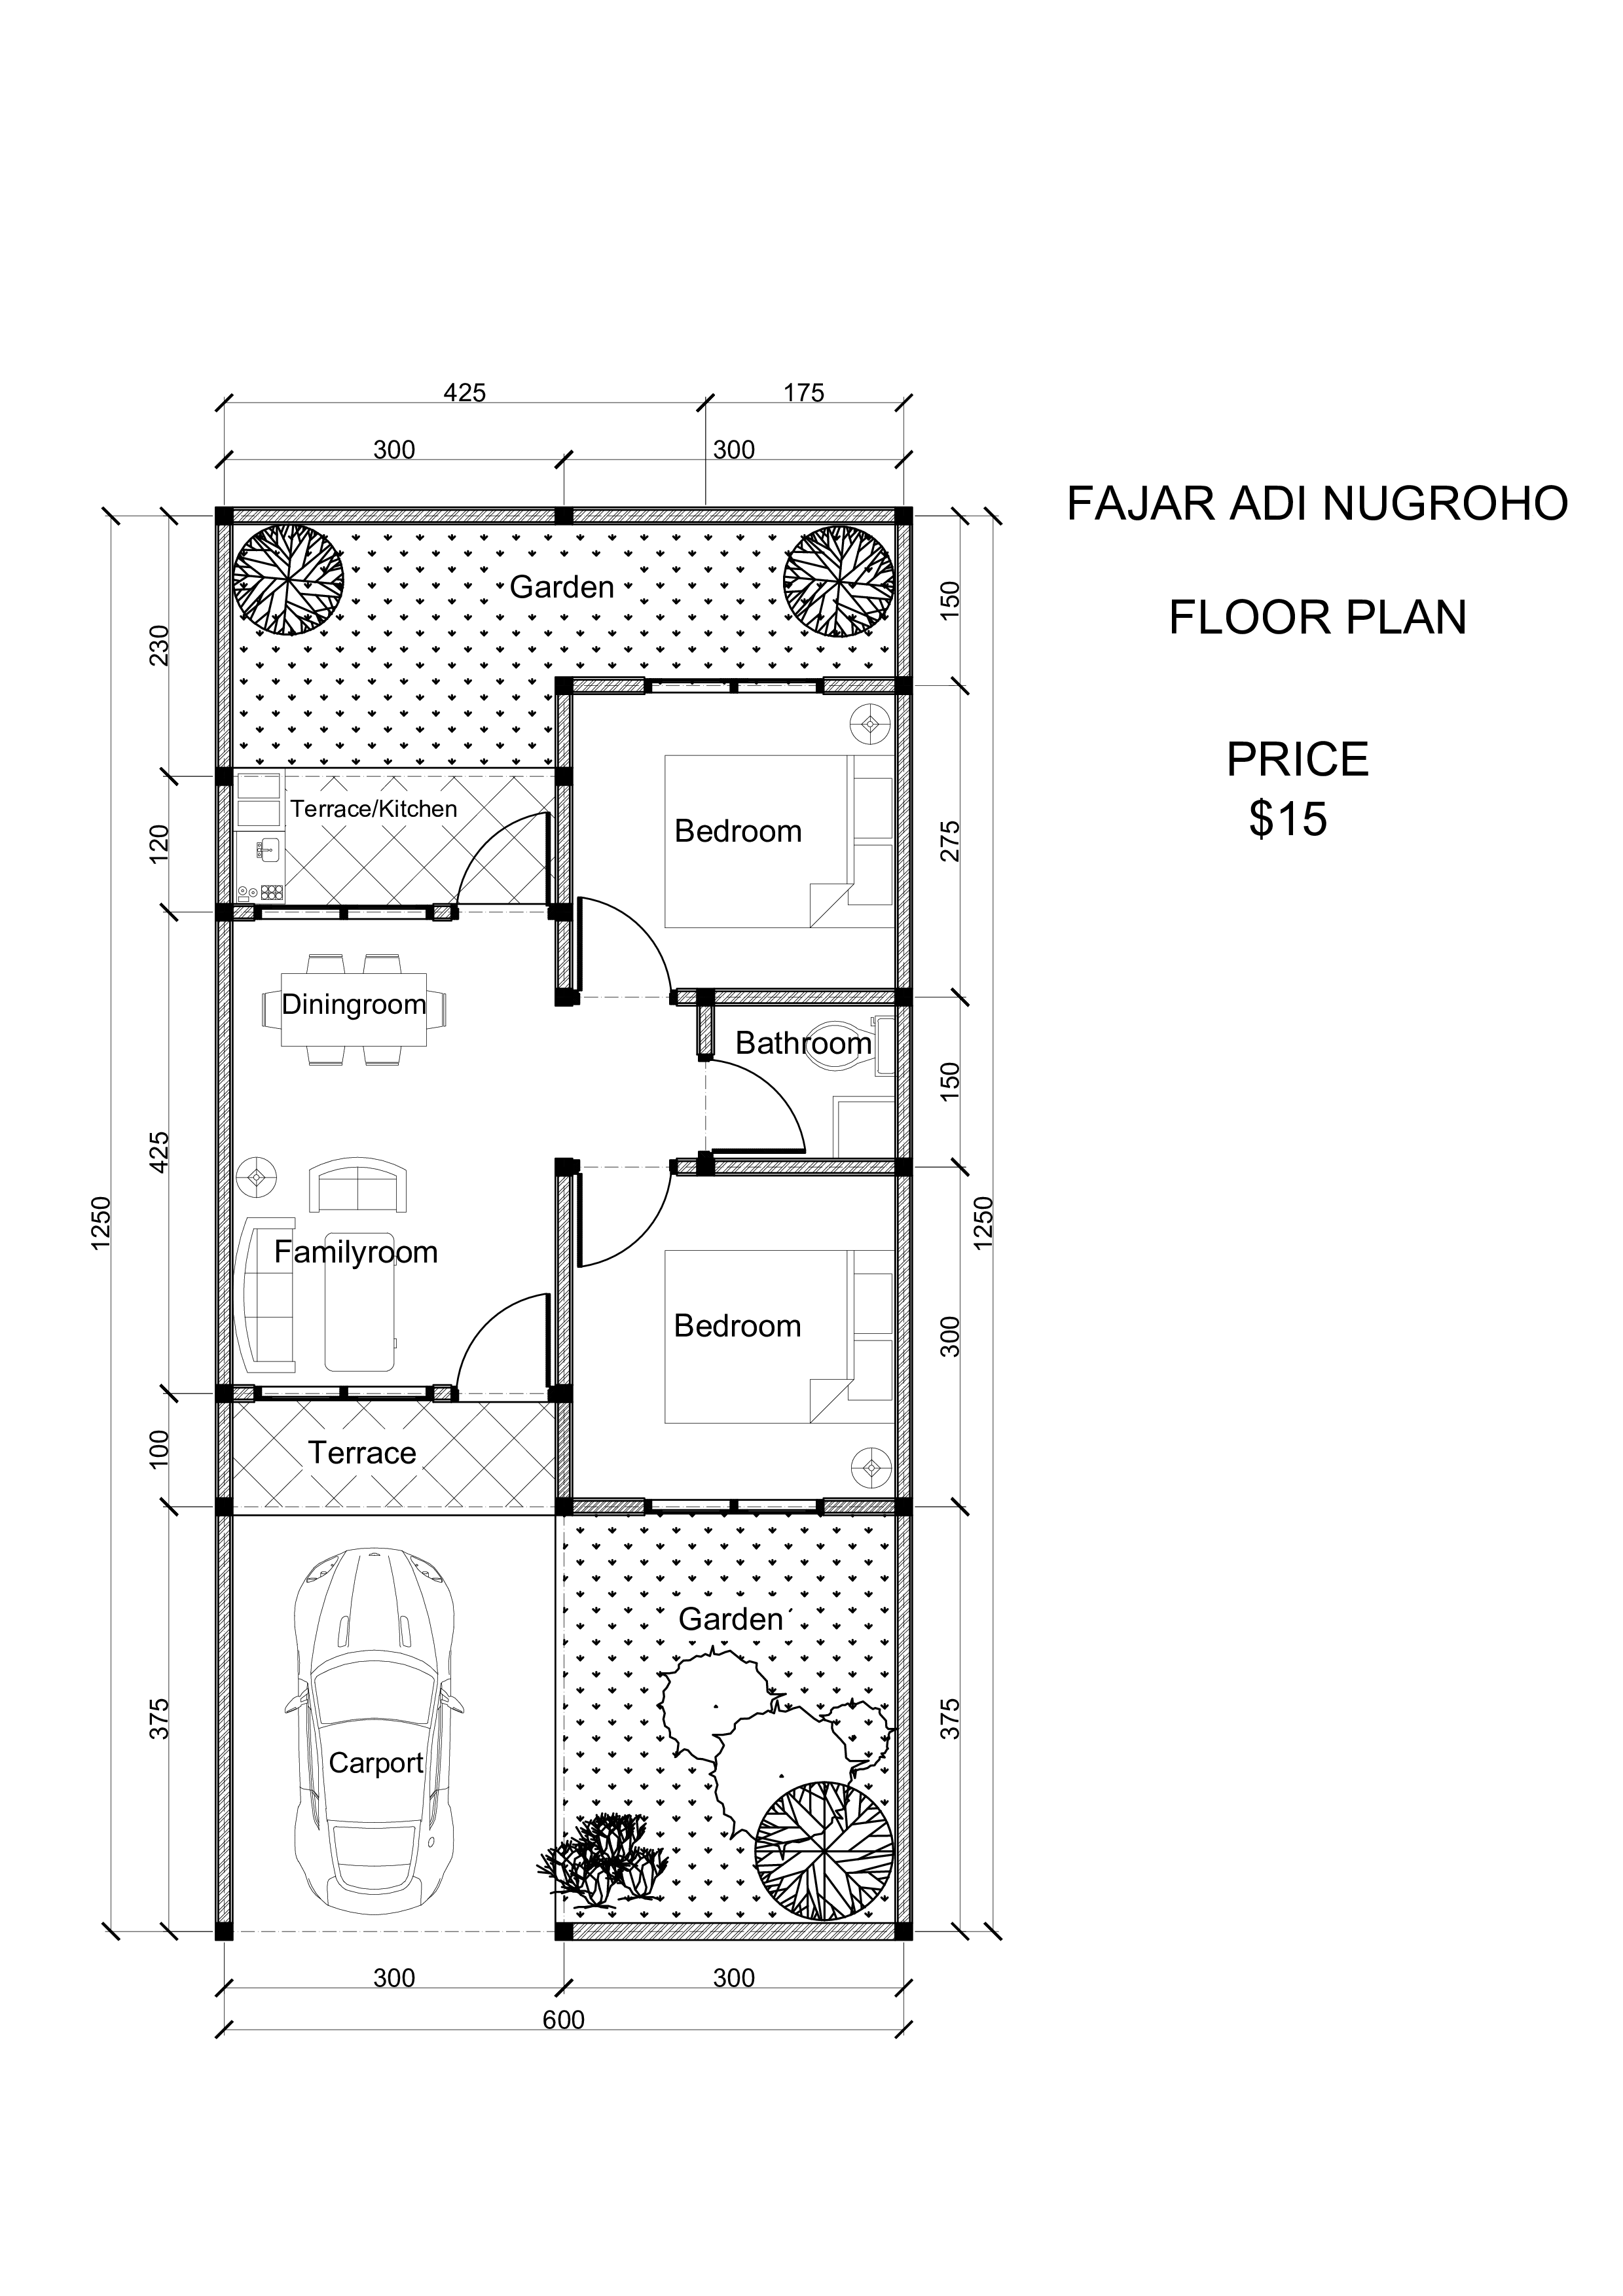 I will redraw the floor plan using autocad